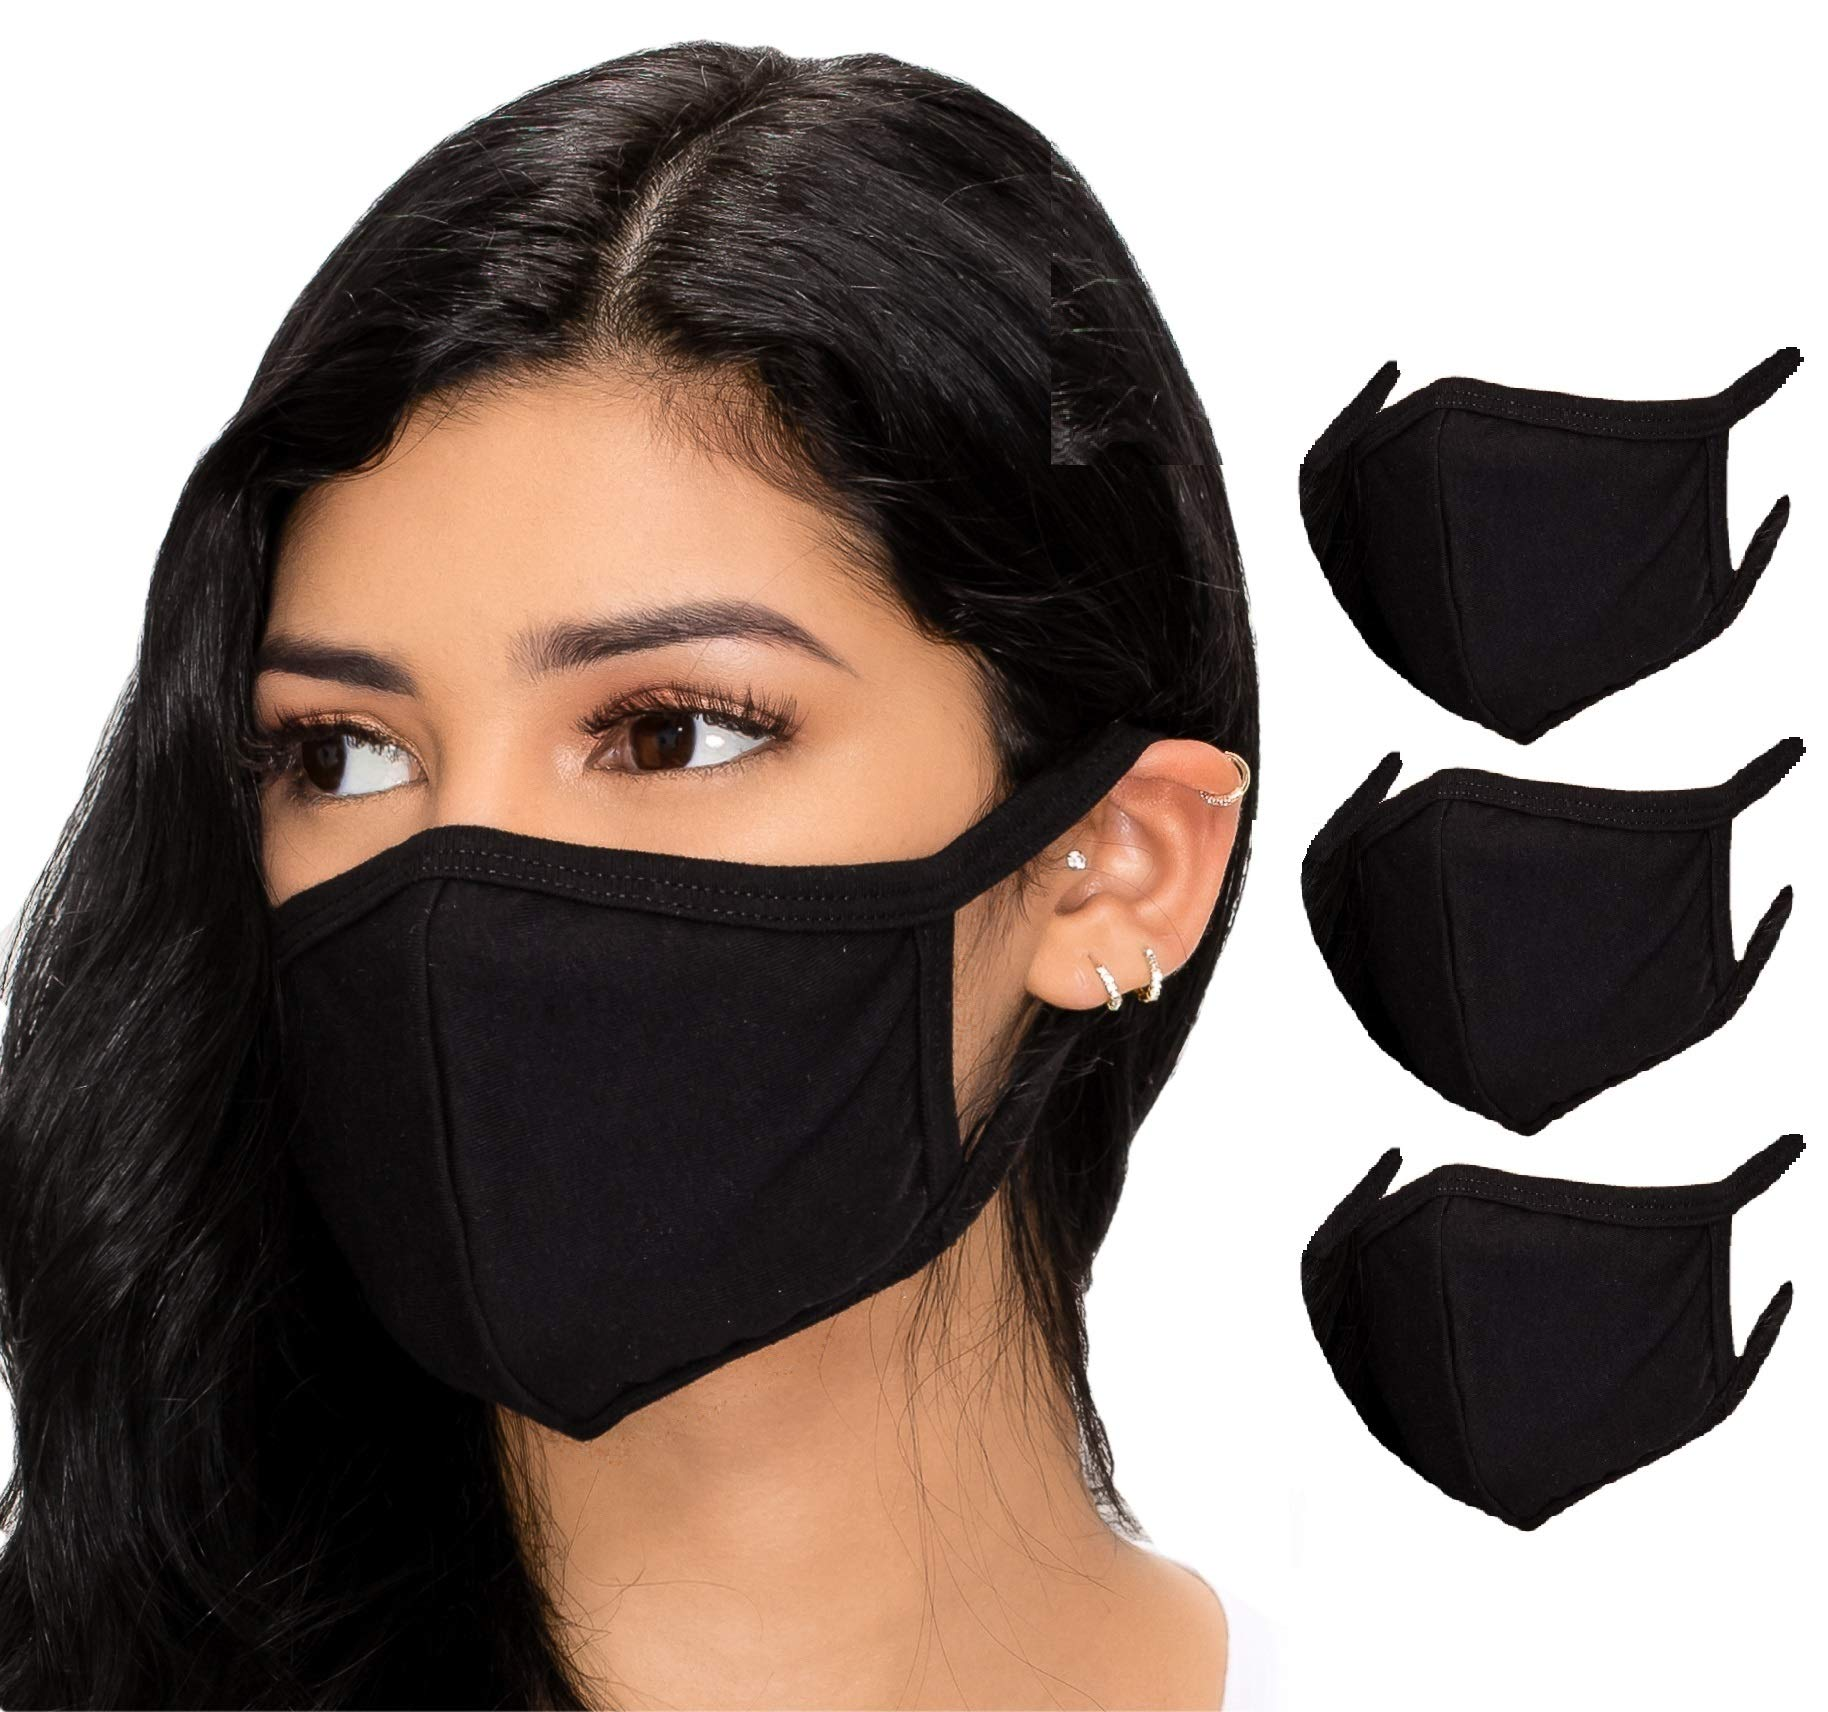 Reusable Cotton Comfy Breathable Material Pack 3 Dust Mouth Cover